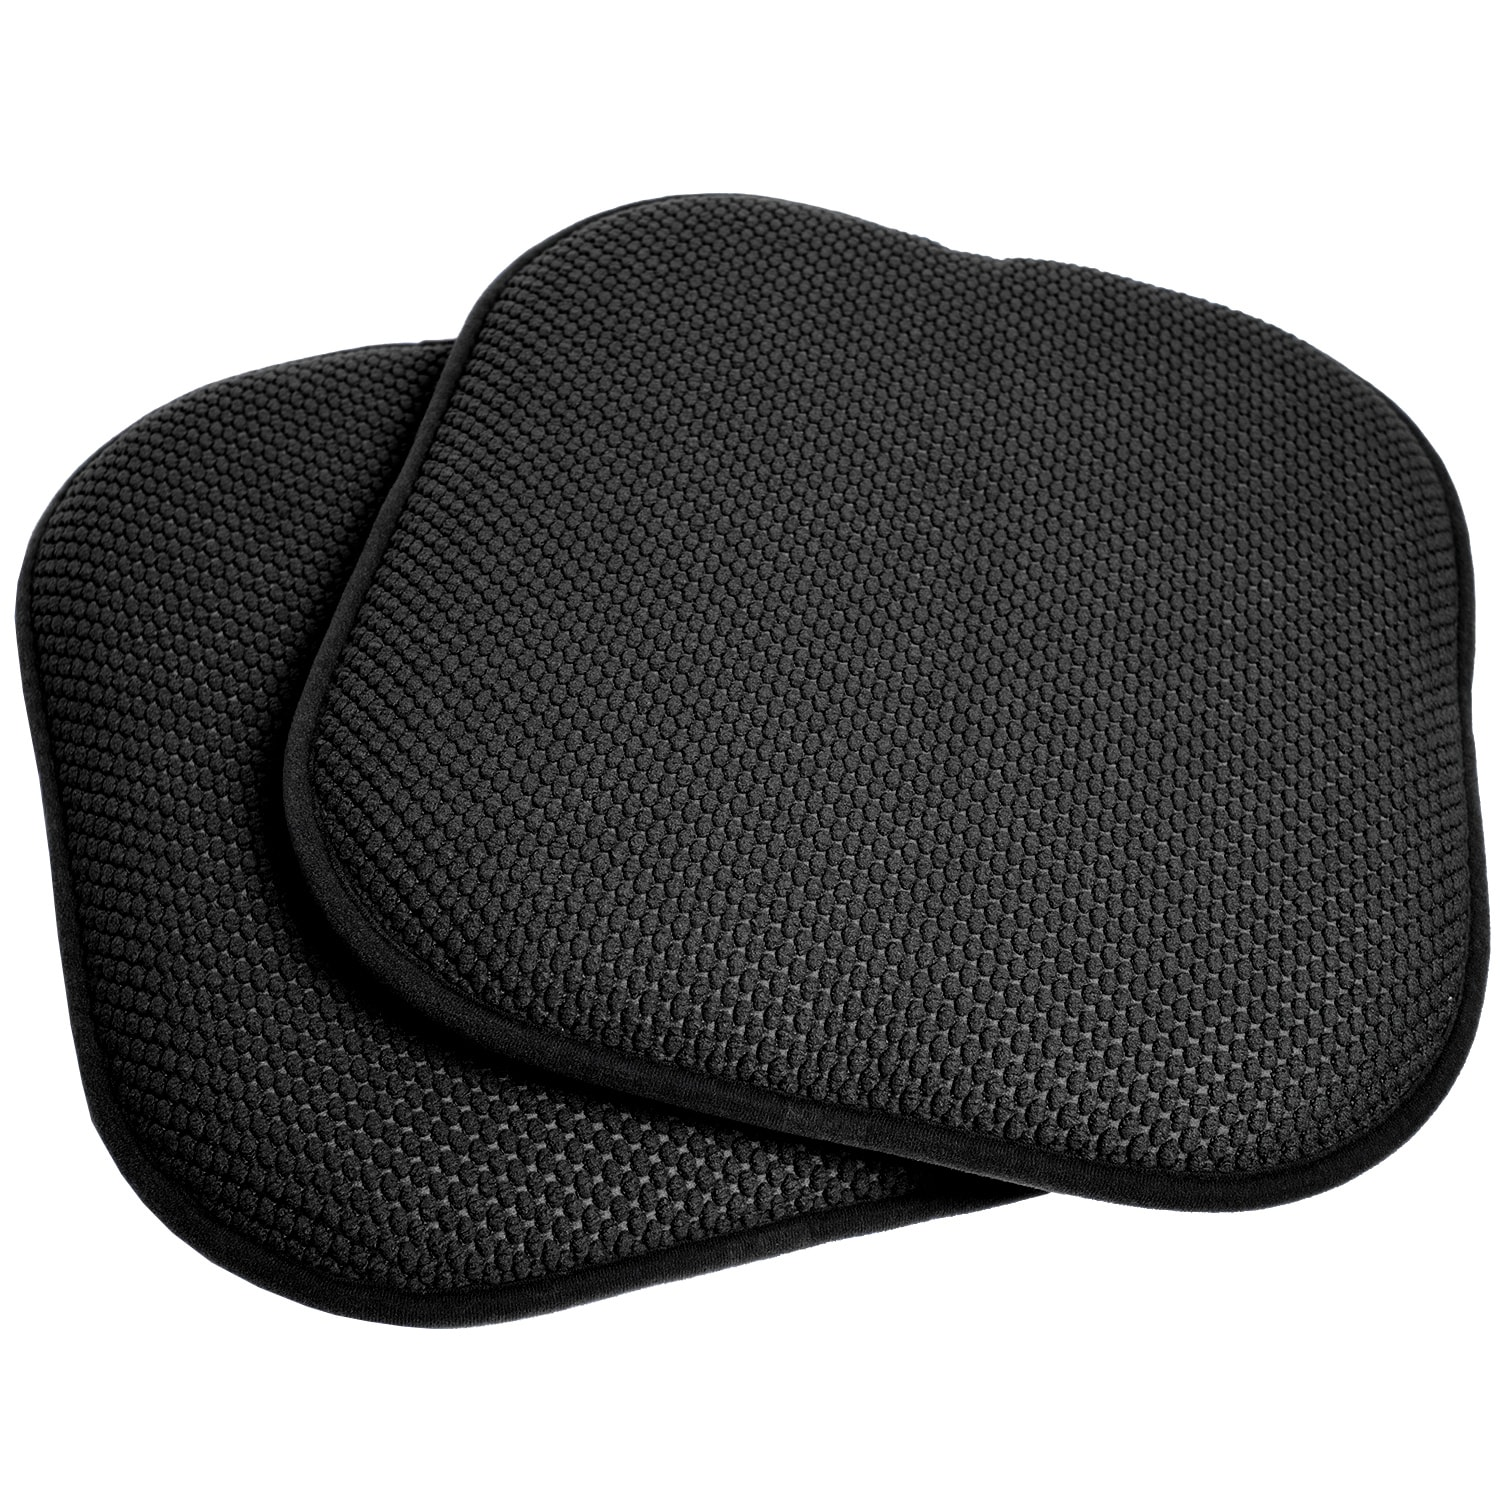 Black 16-inch Memory Foam Chair Pad/Seat Cushion with Non...